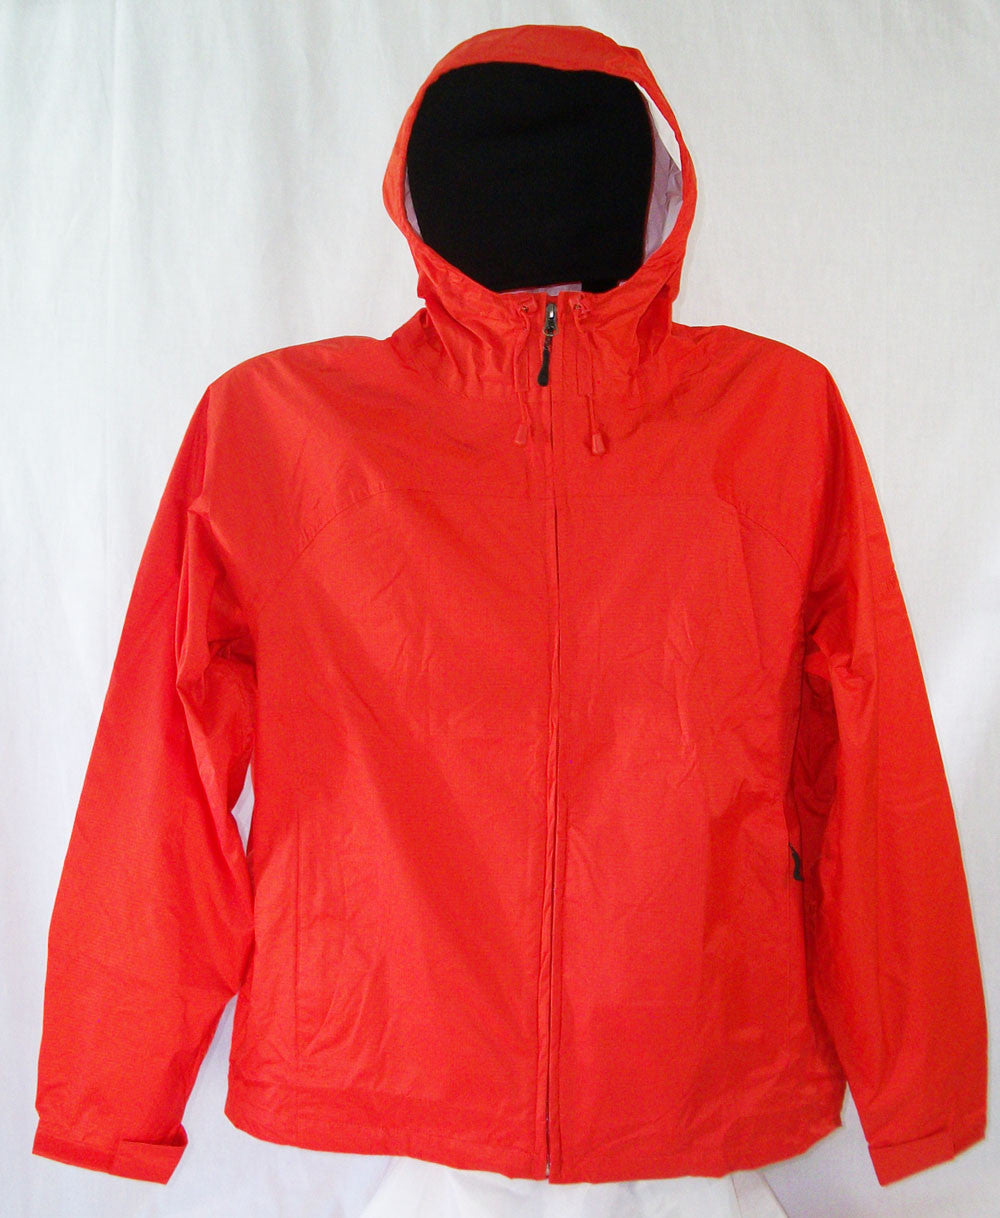 McKinley Kitsalano Mens Snowboard Ski Jacket Wind Breaker Spicey Orange Large